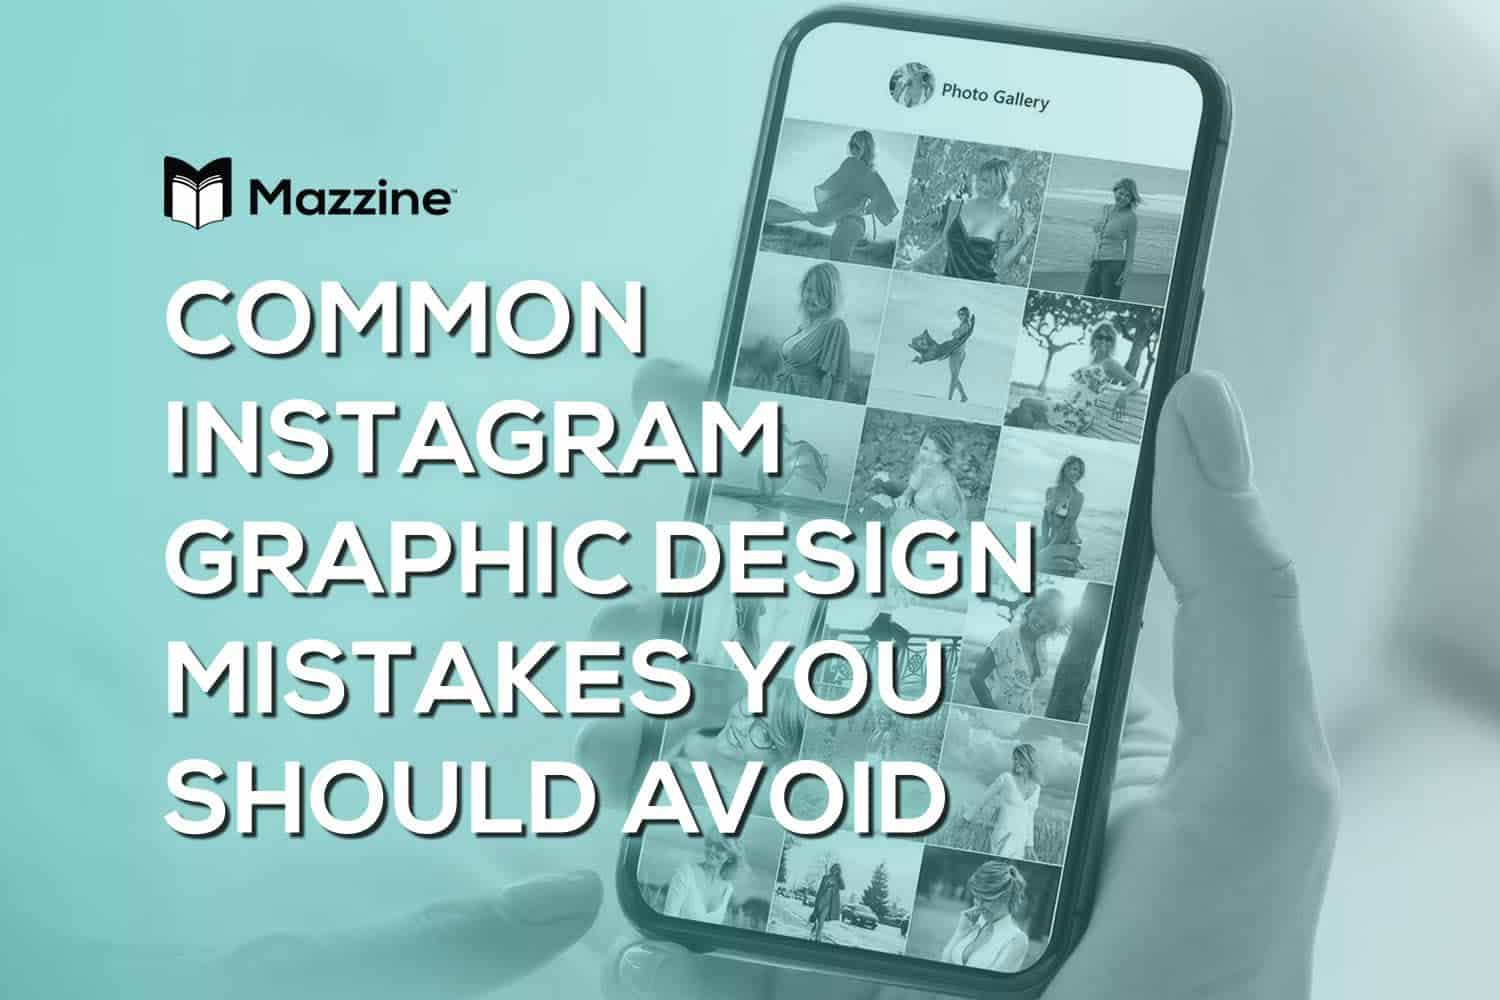 Common Instagram Graphic Design Mistakes You Should Avoid (1)